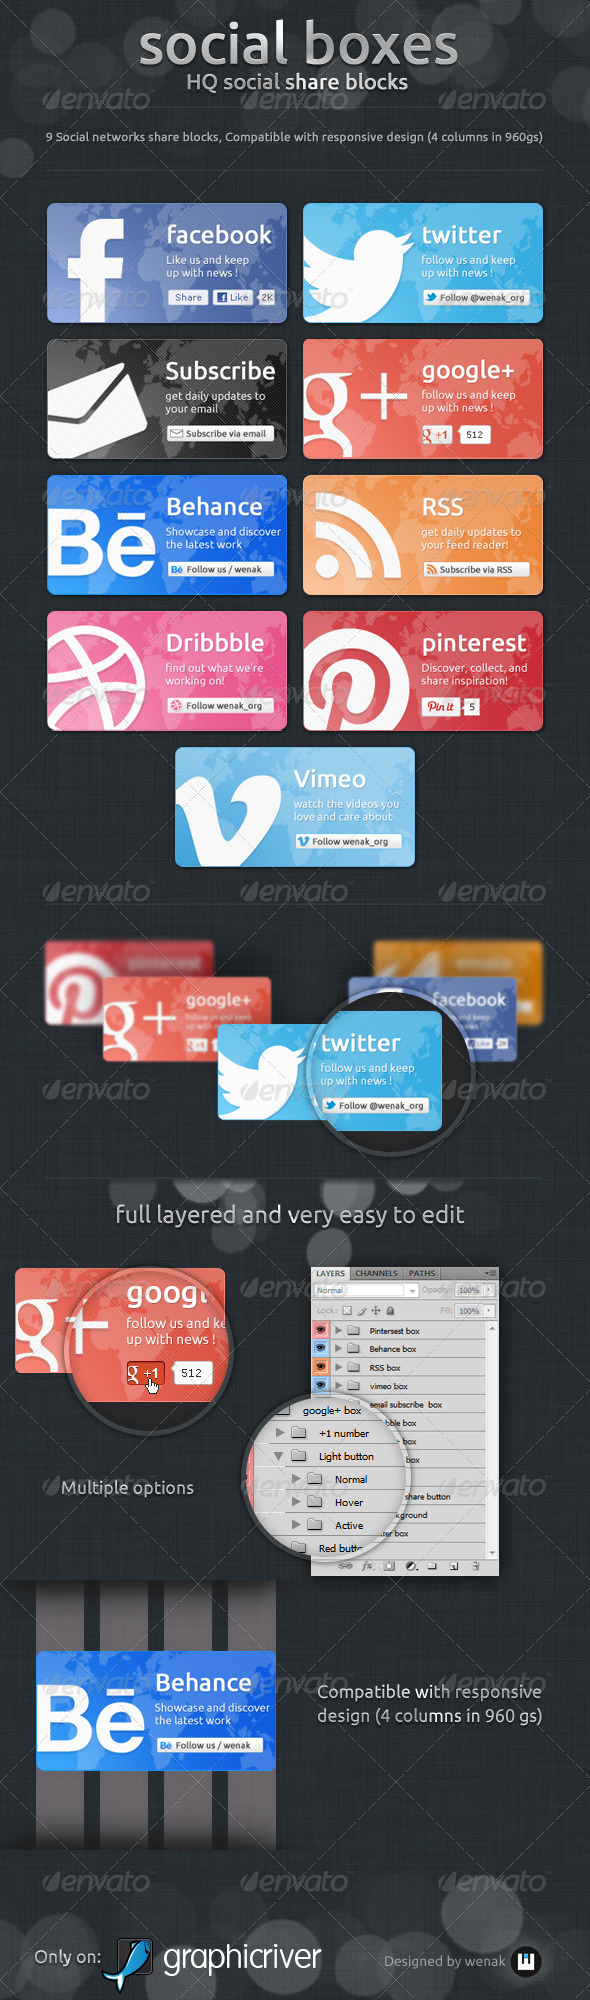 Social Boxes - Social Share Blocks   - Social Media Web Elements